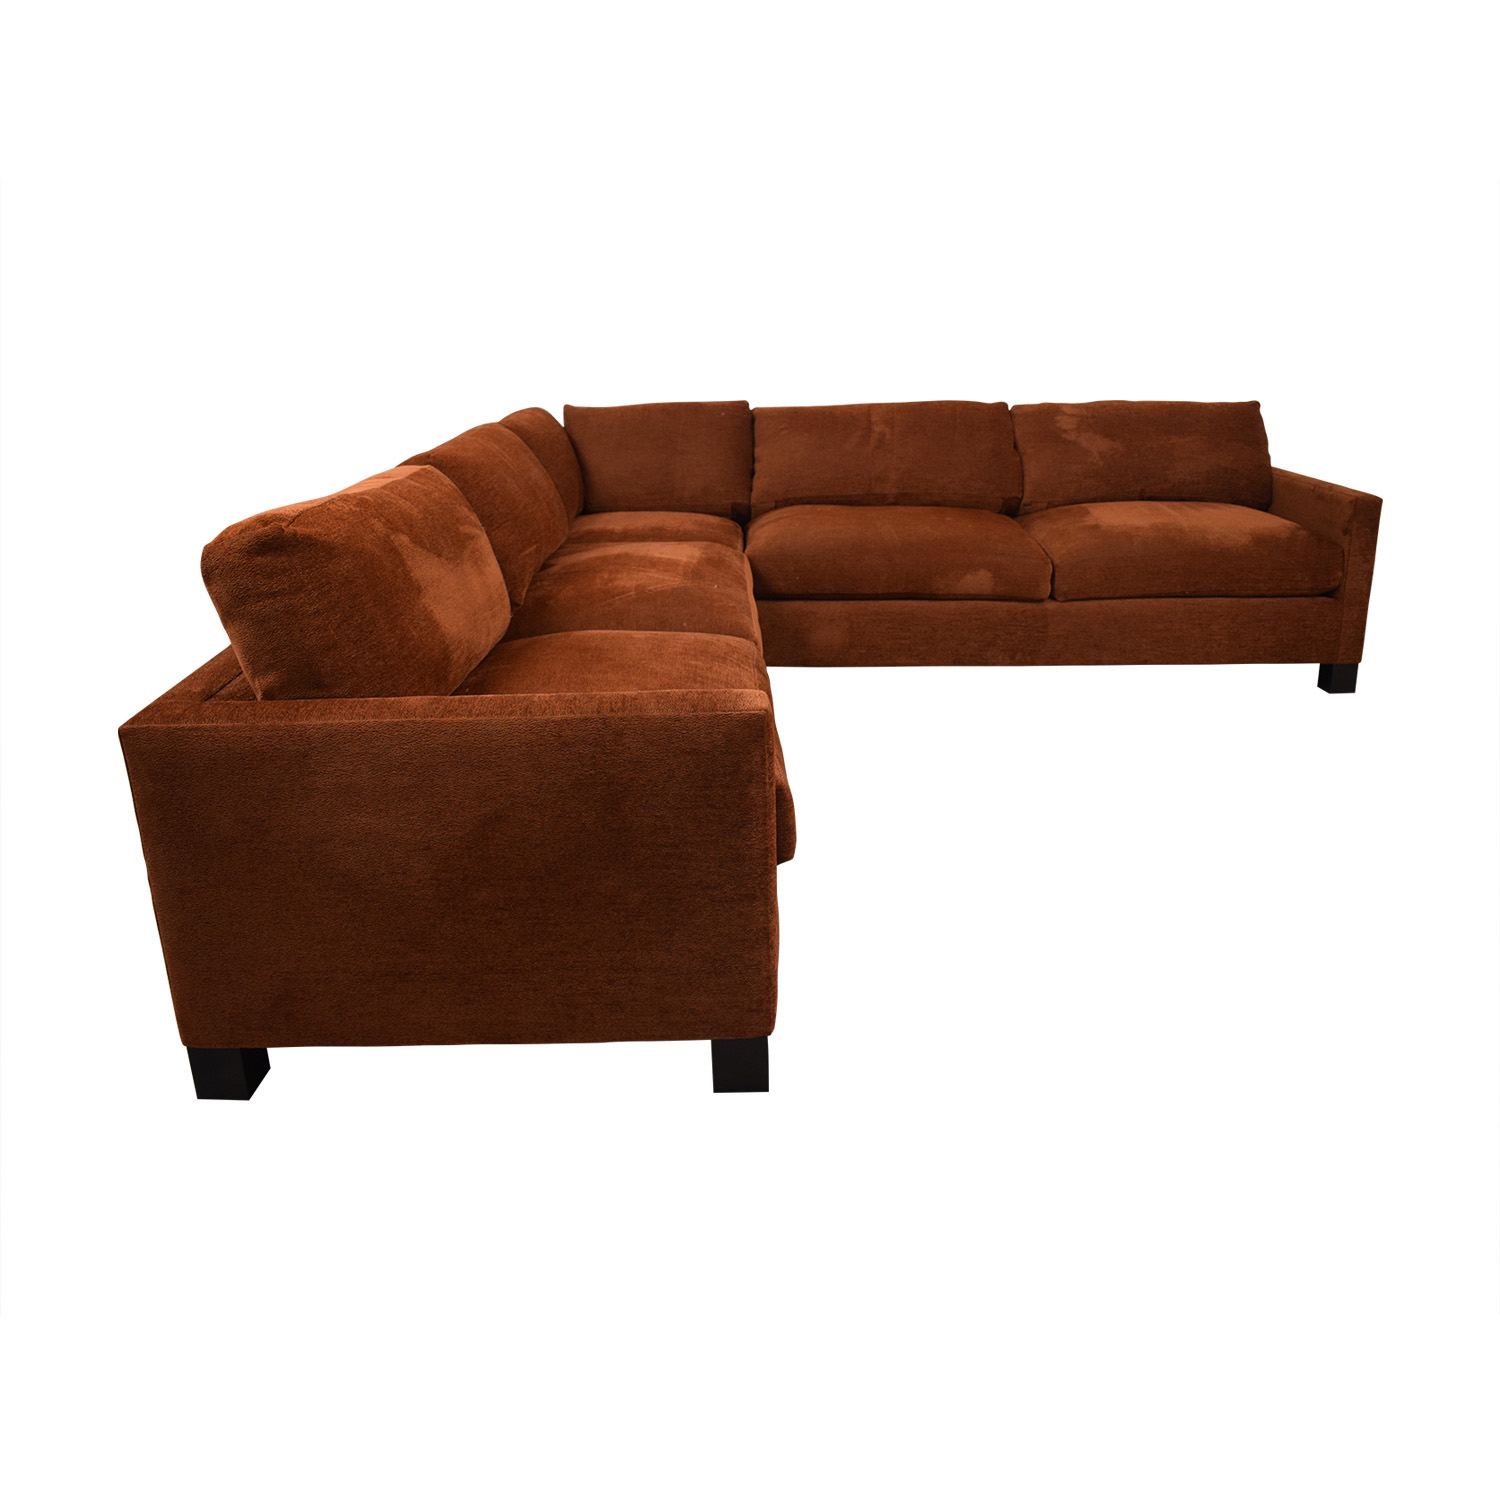 A. Rudin A. Rudin Burnt Orange L-Shaped Sectional discount